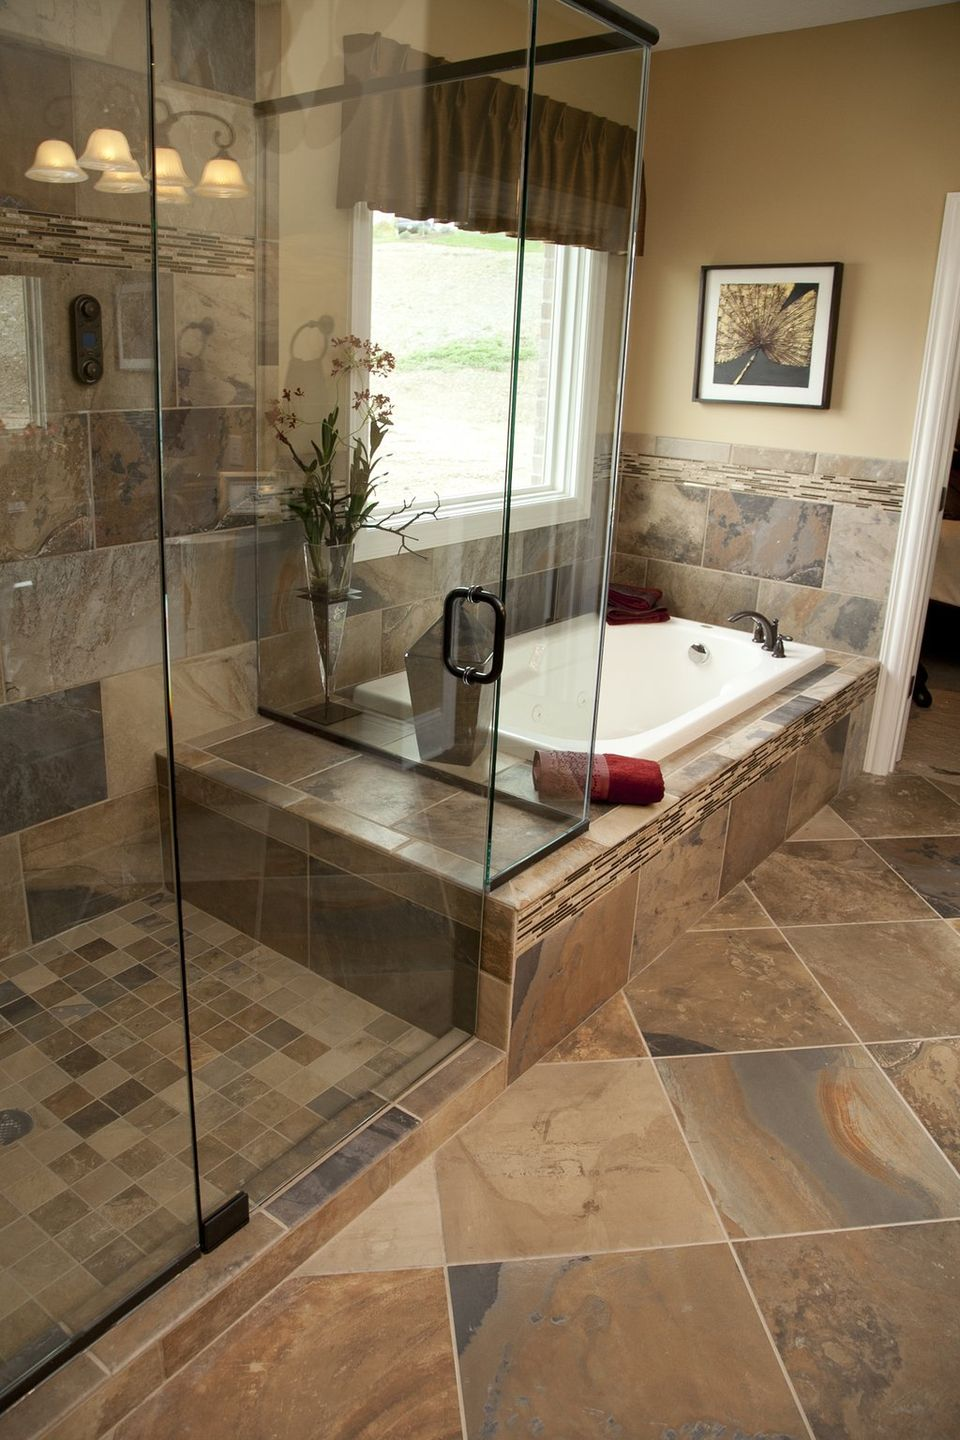 33 stunning pictures and ideas of natural stone bathroom for Bathroom tiles design